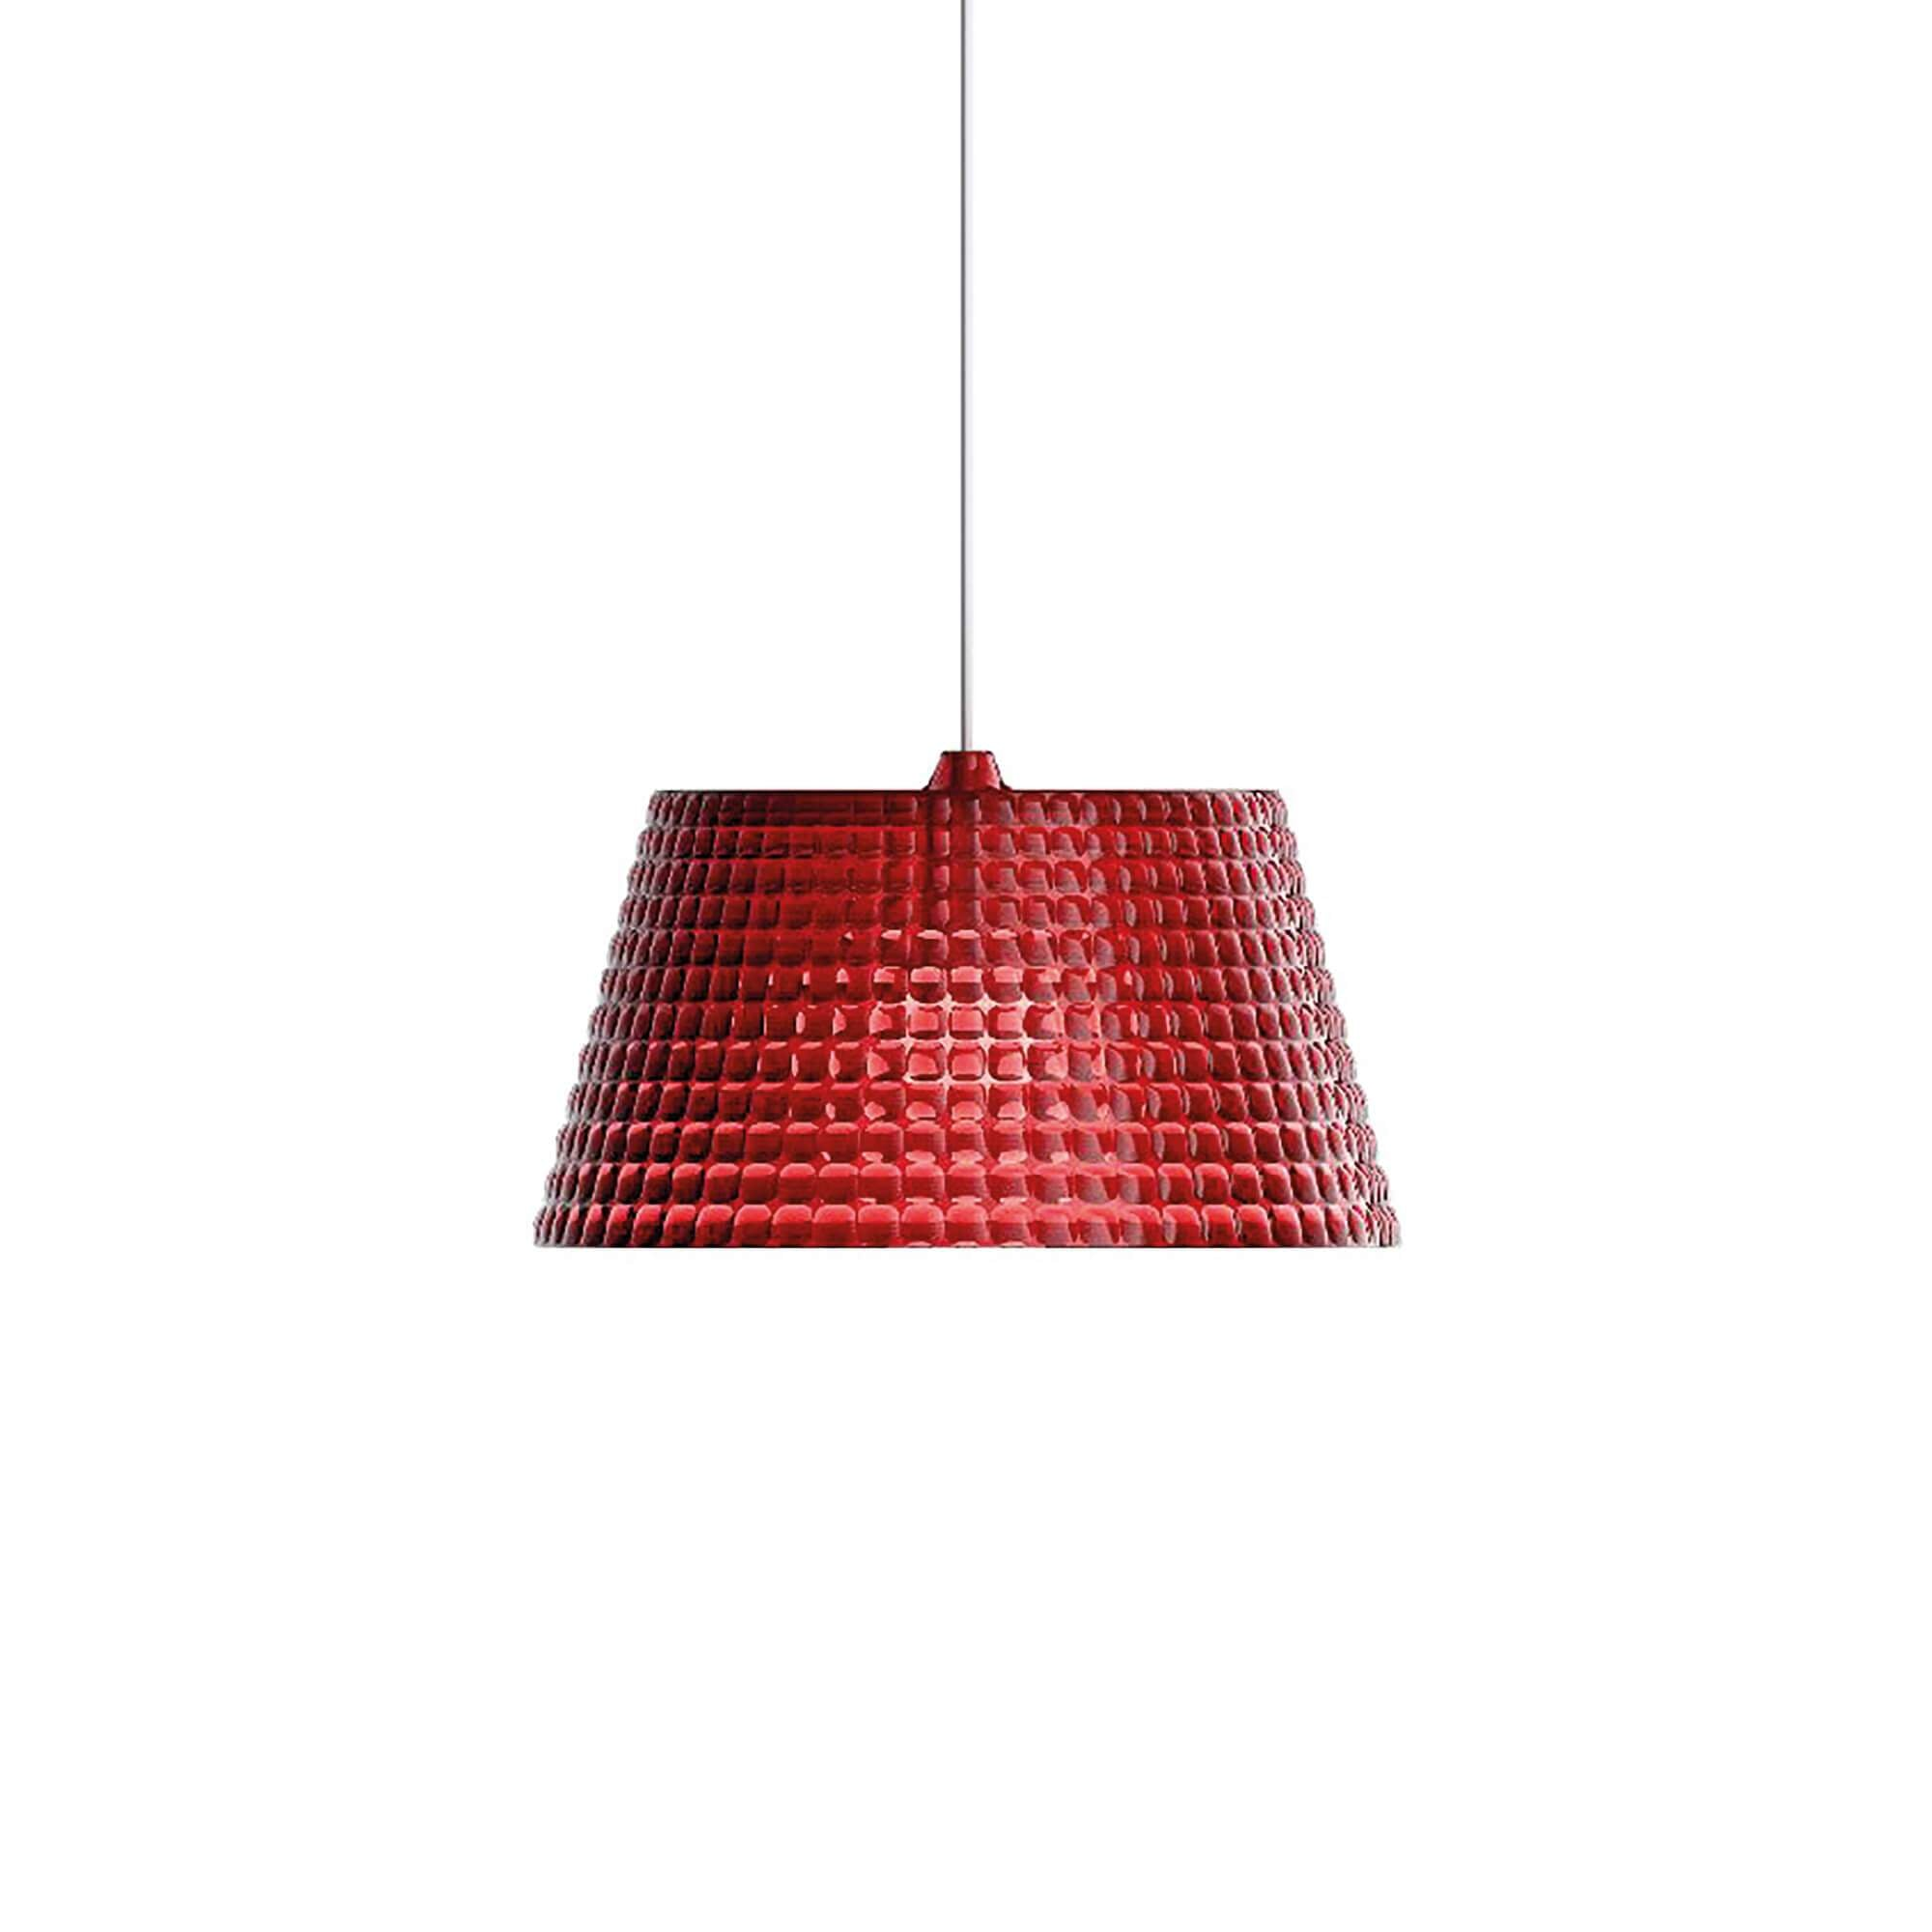 Guzzini Tiffany Large Pendant Lamp In Red - ID 8538